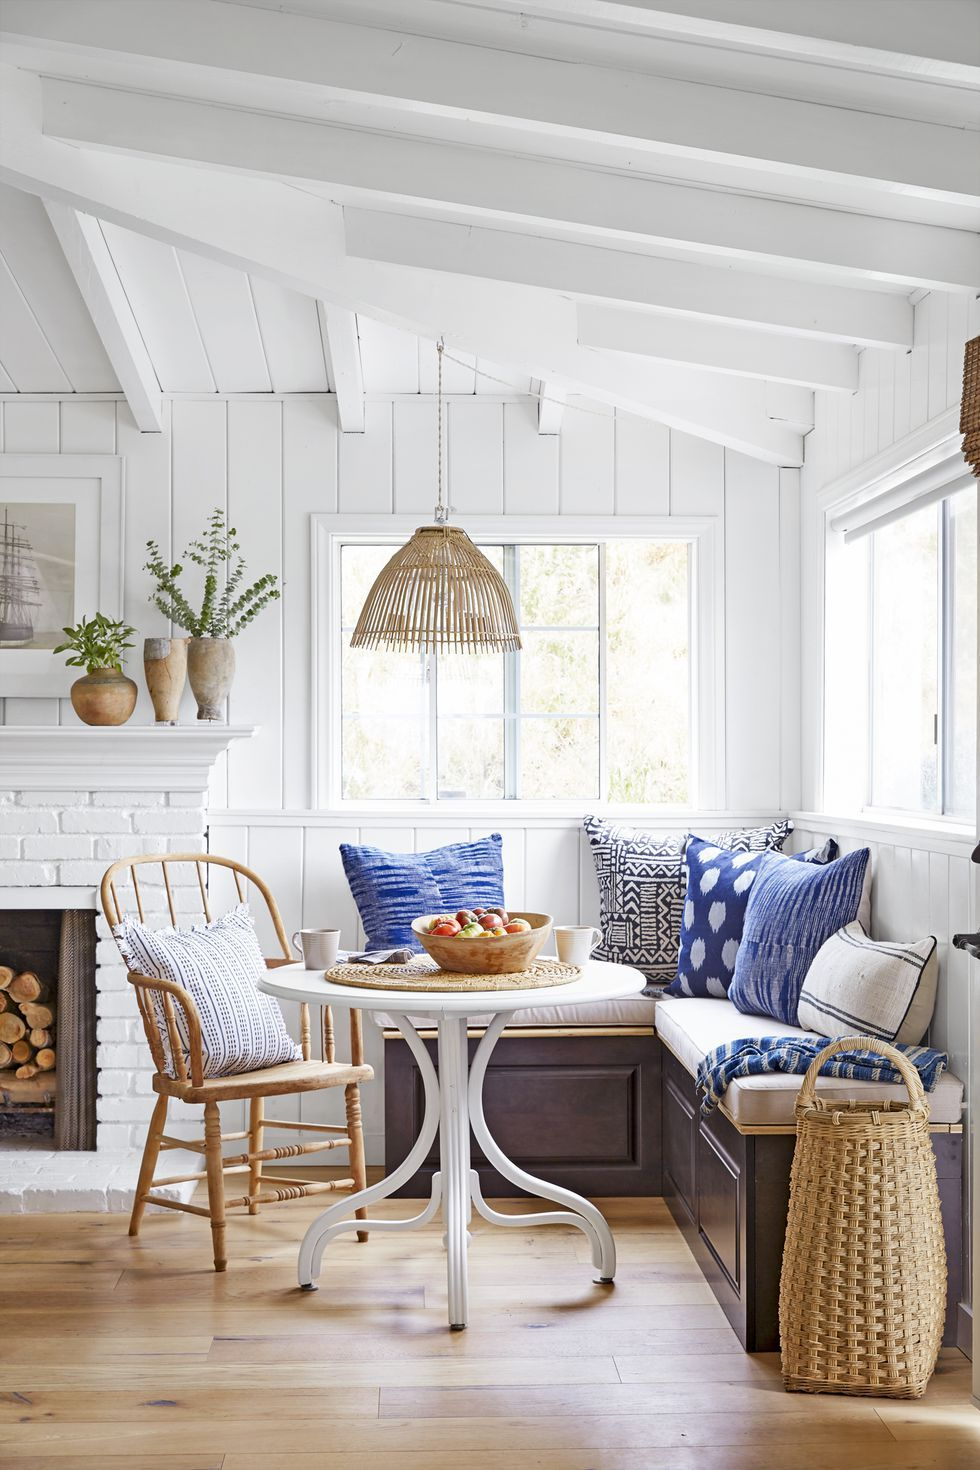 19 Kitchen Banquette Ideas Banquette Seating Ideas For